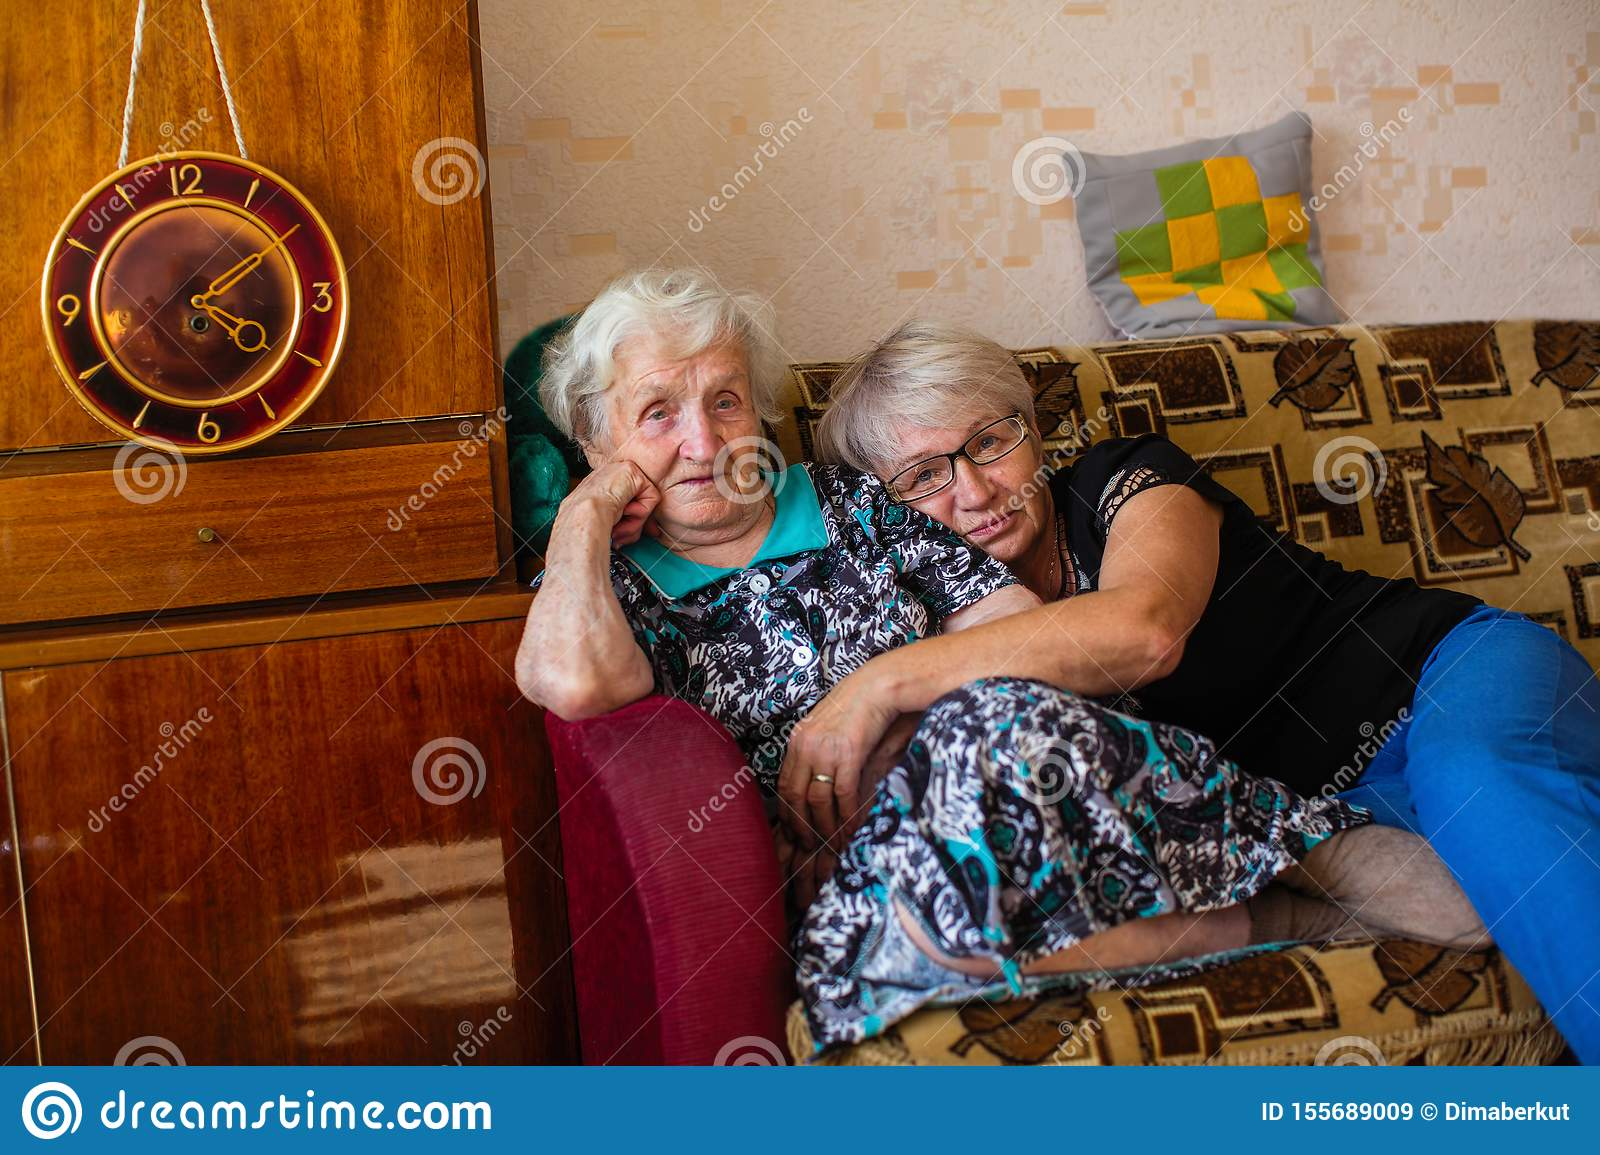 Old Woman With Her Adult Daughter Sitting On The Couch Love